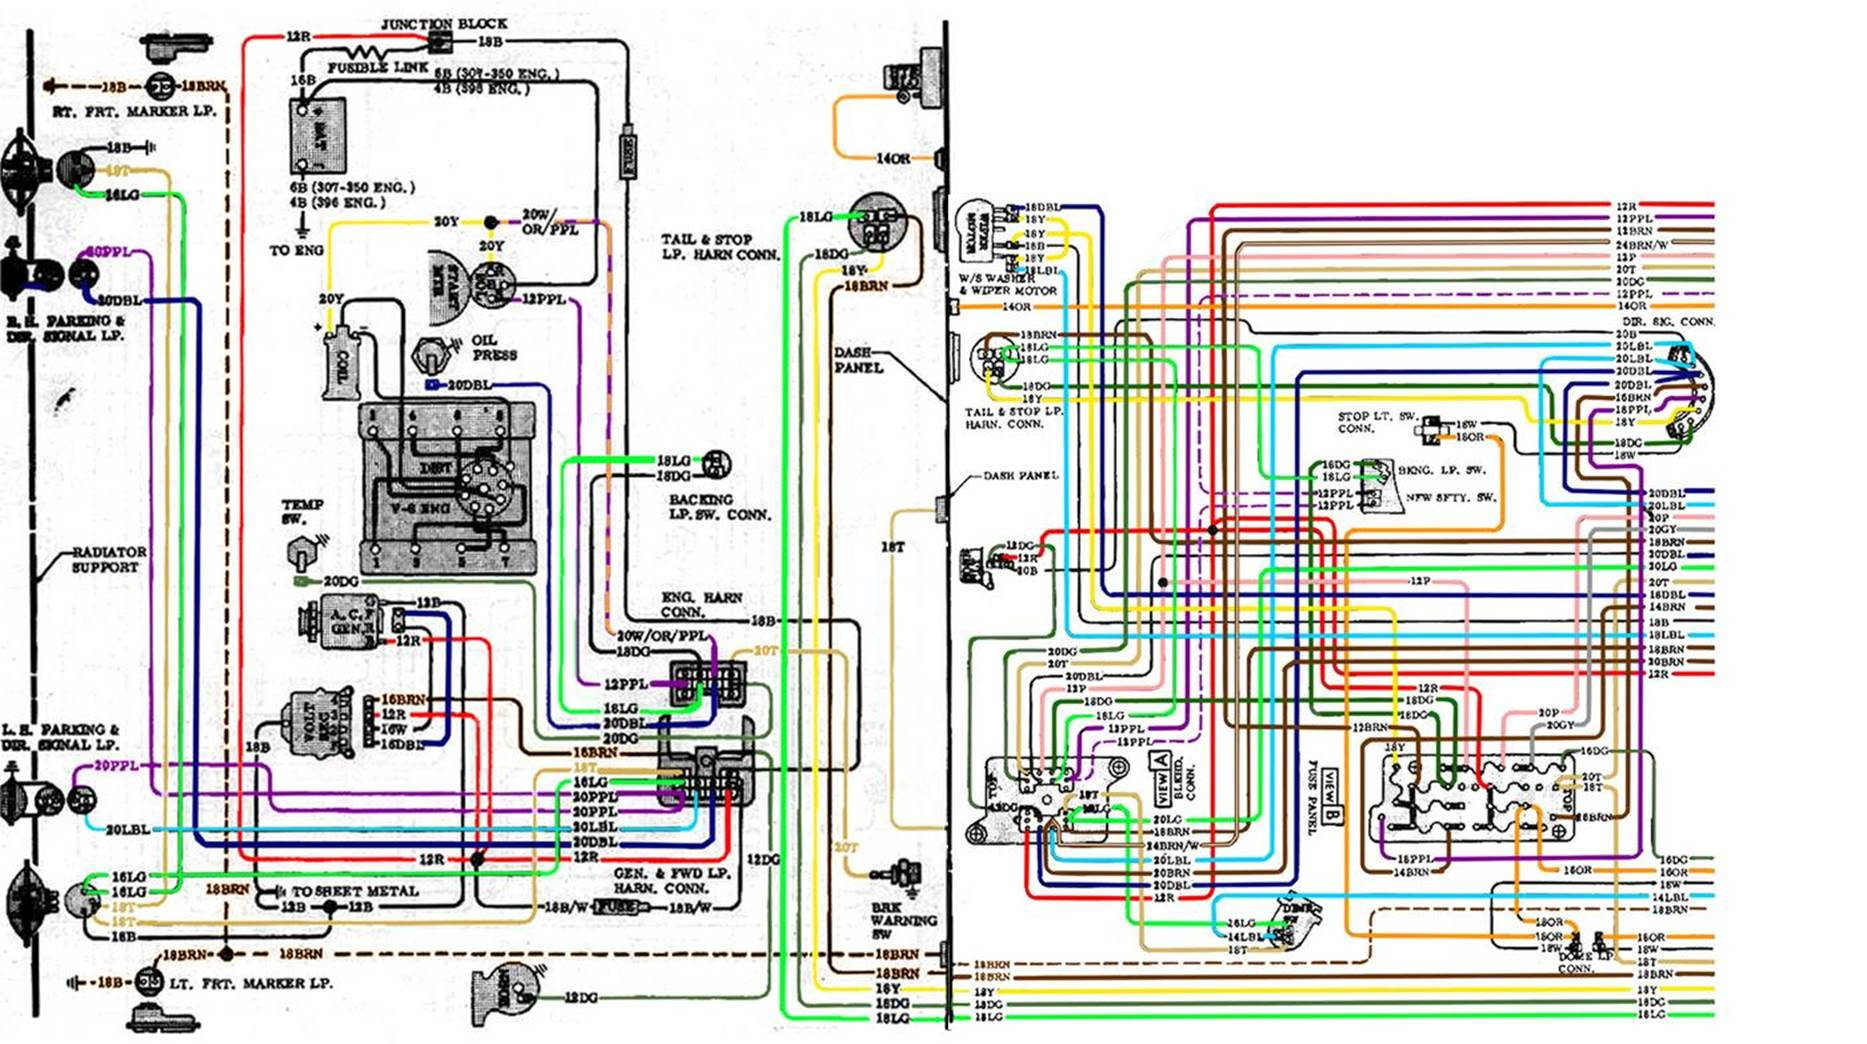 Remarkable Chevy Nova Wiring Harness Basic Electronics Wiring Diagram Wiring Cloud Geisbieswglorg